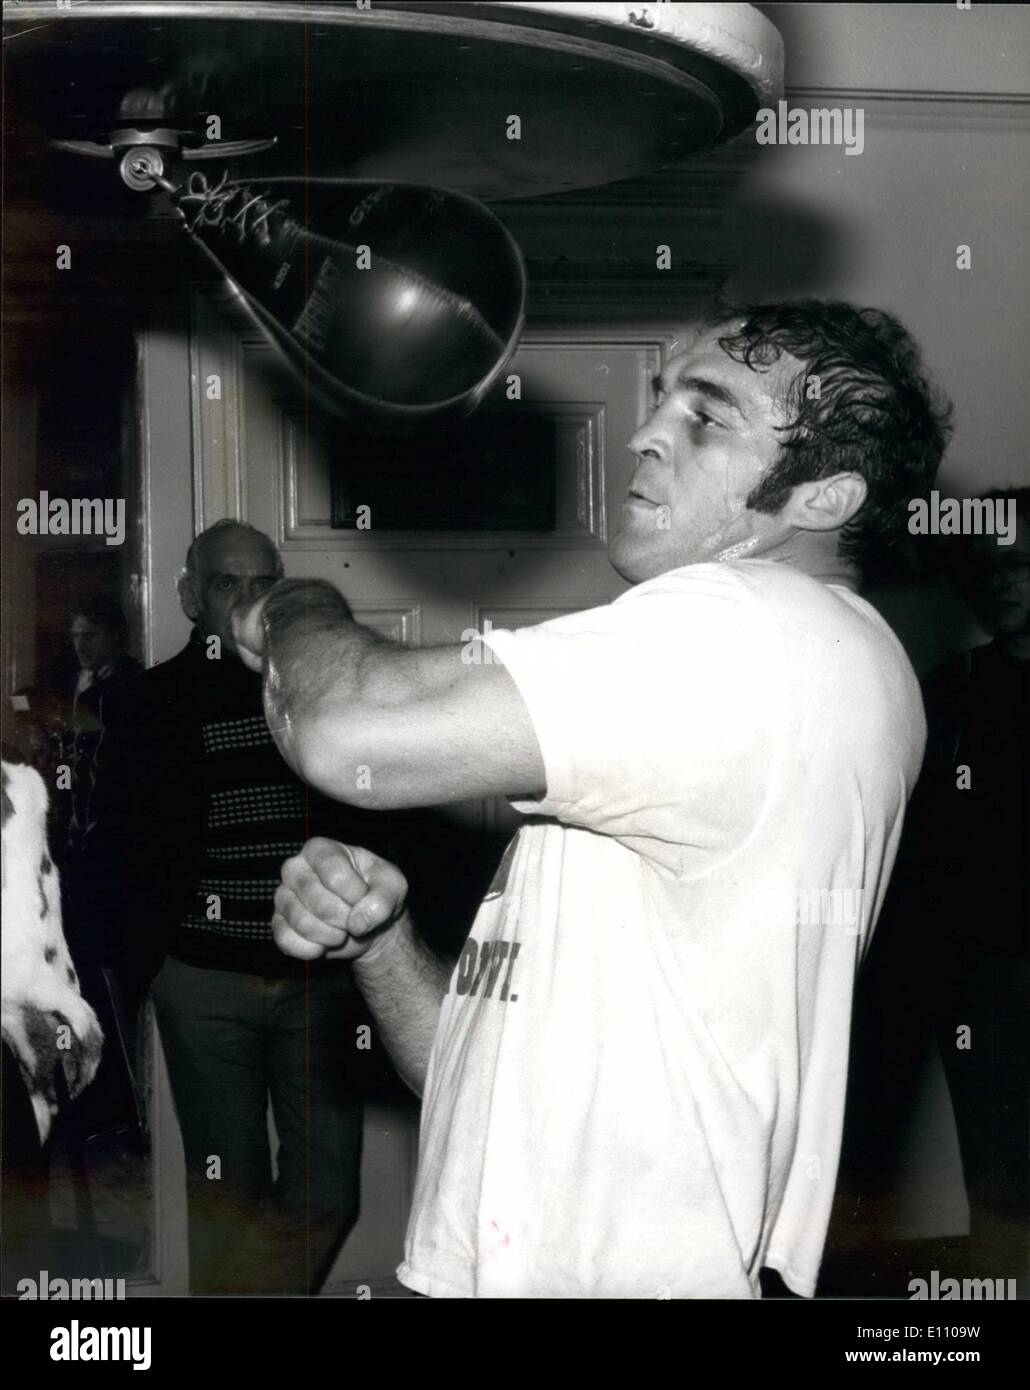 Nov. 11, 1974 - Kirkman trains for Bugner fight. American heavyweight, Boone Kirkman gets in some work on the punch bag, in readiness for his fight against European champion, Joe Bugner at the Royal Albert Hall, London , next Tuesday. - Stock Image